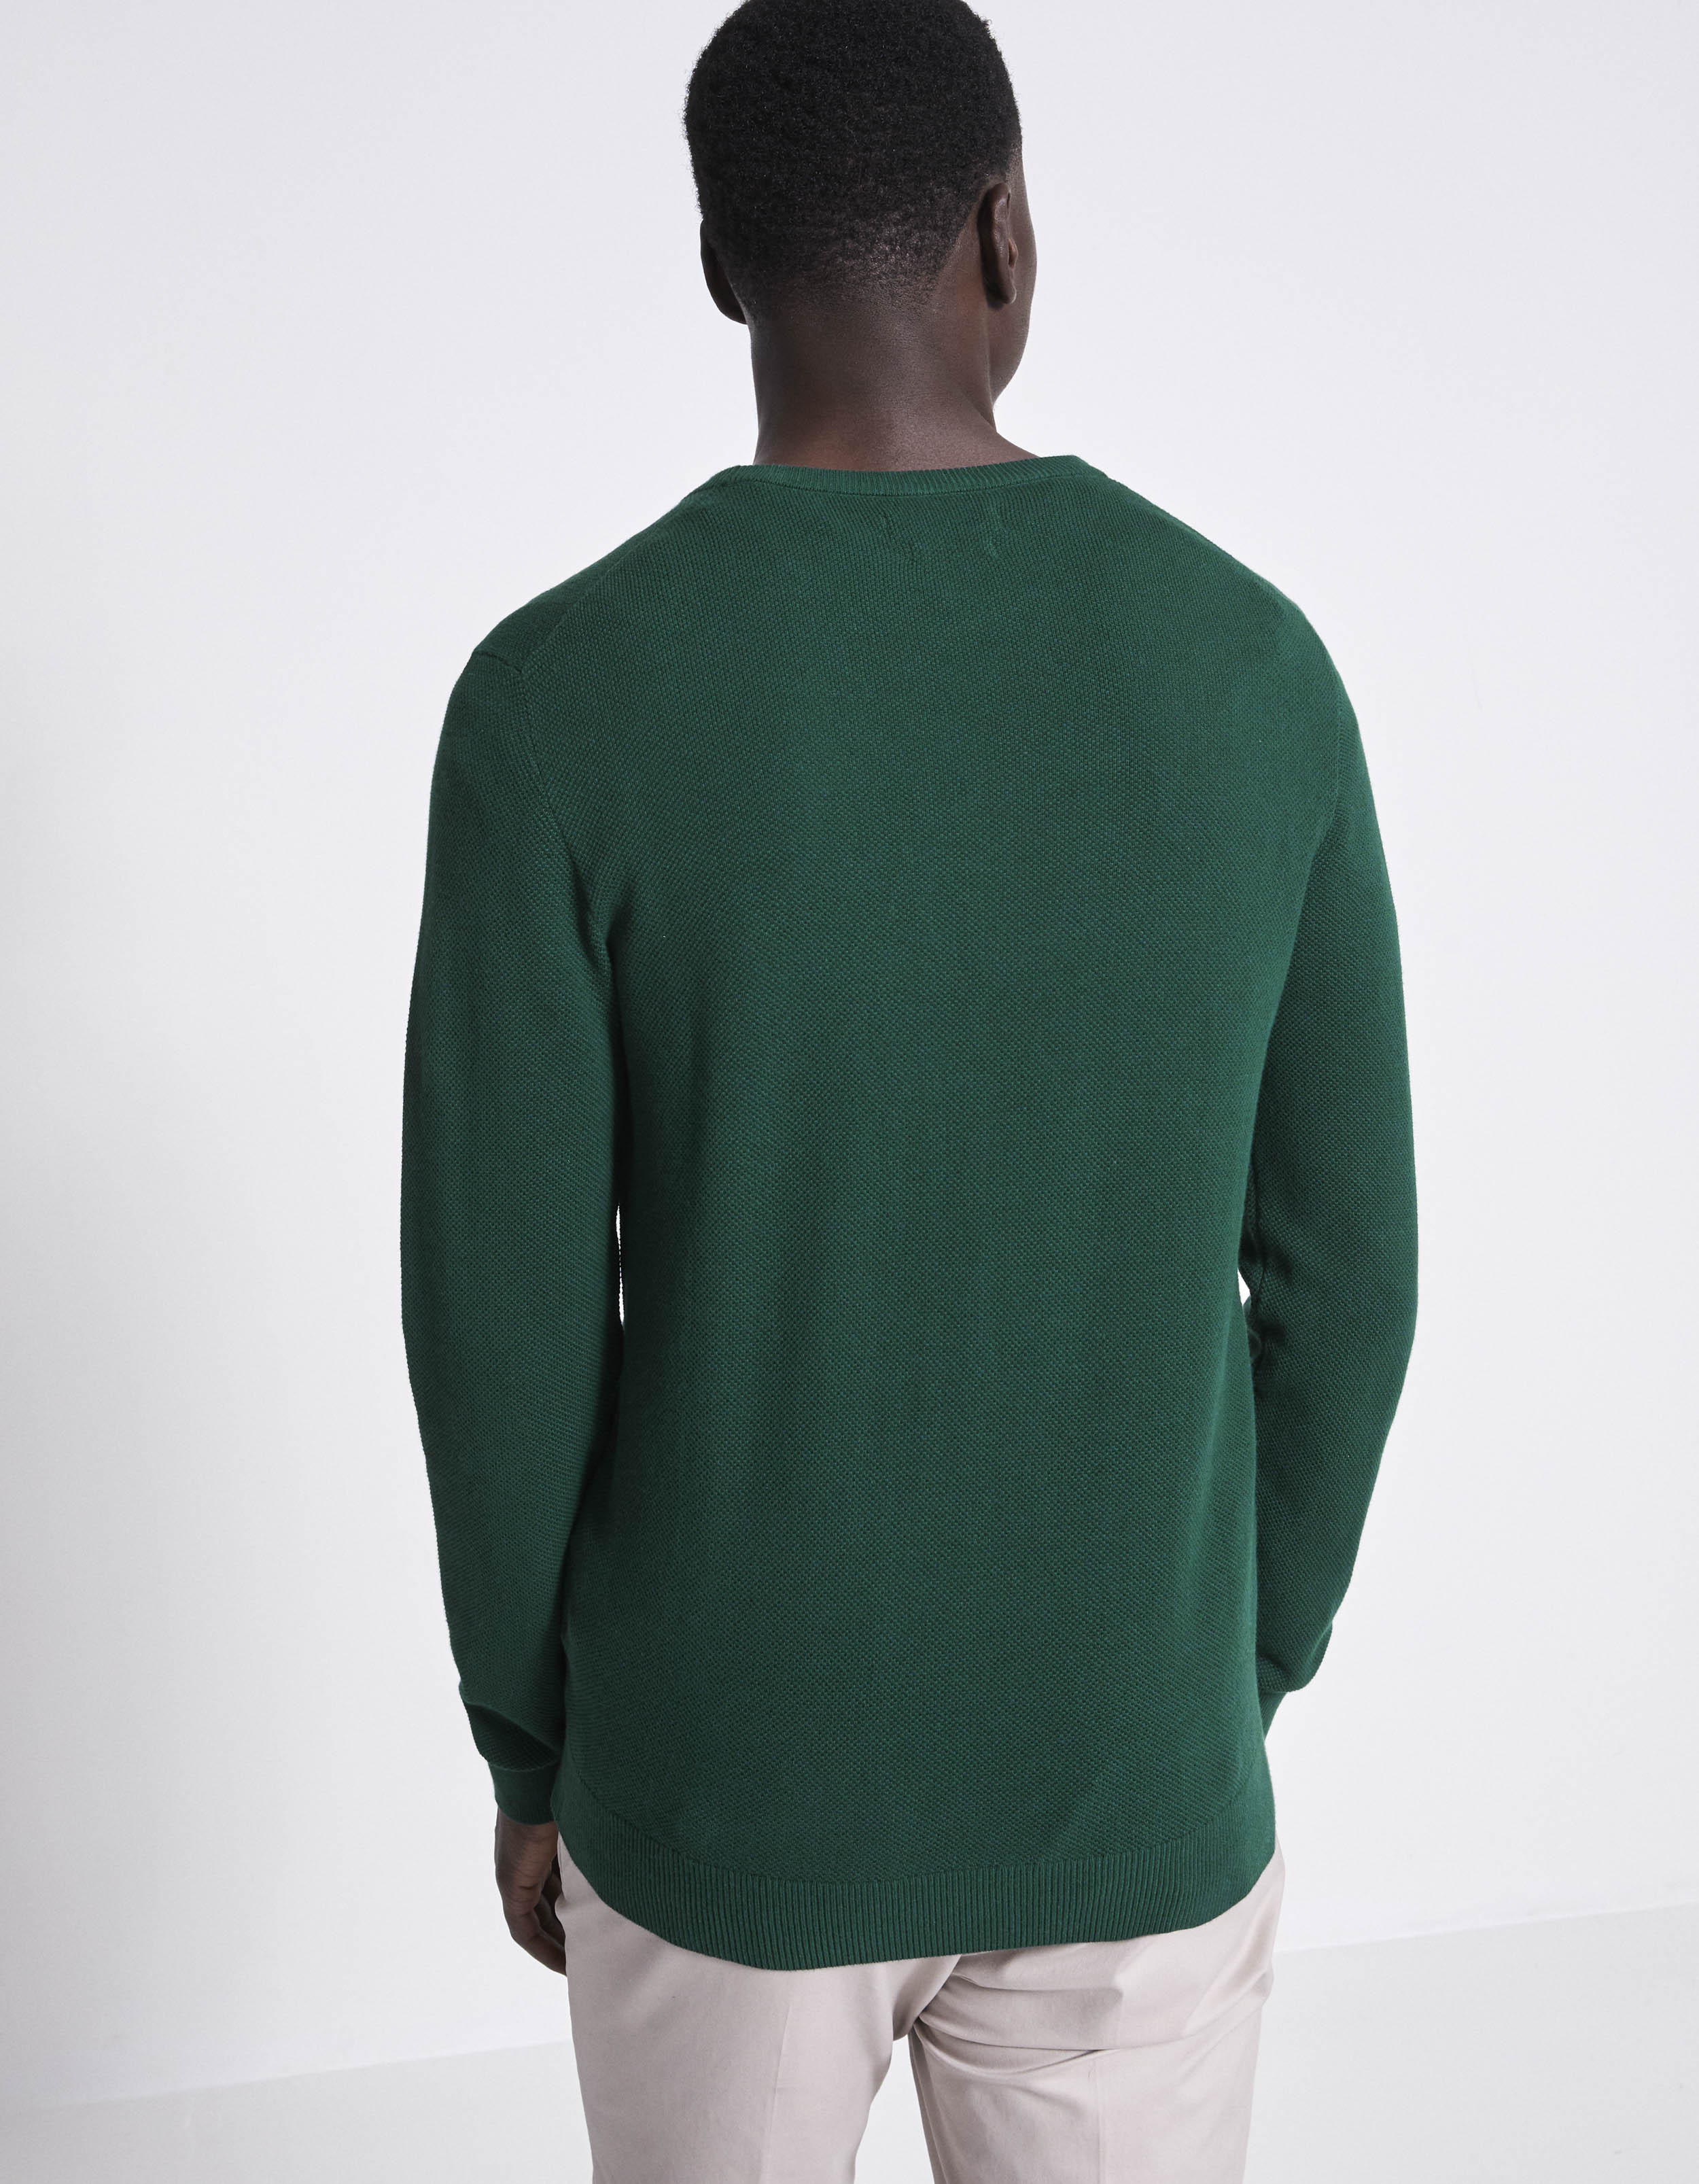 NEPIC_GREEN_4